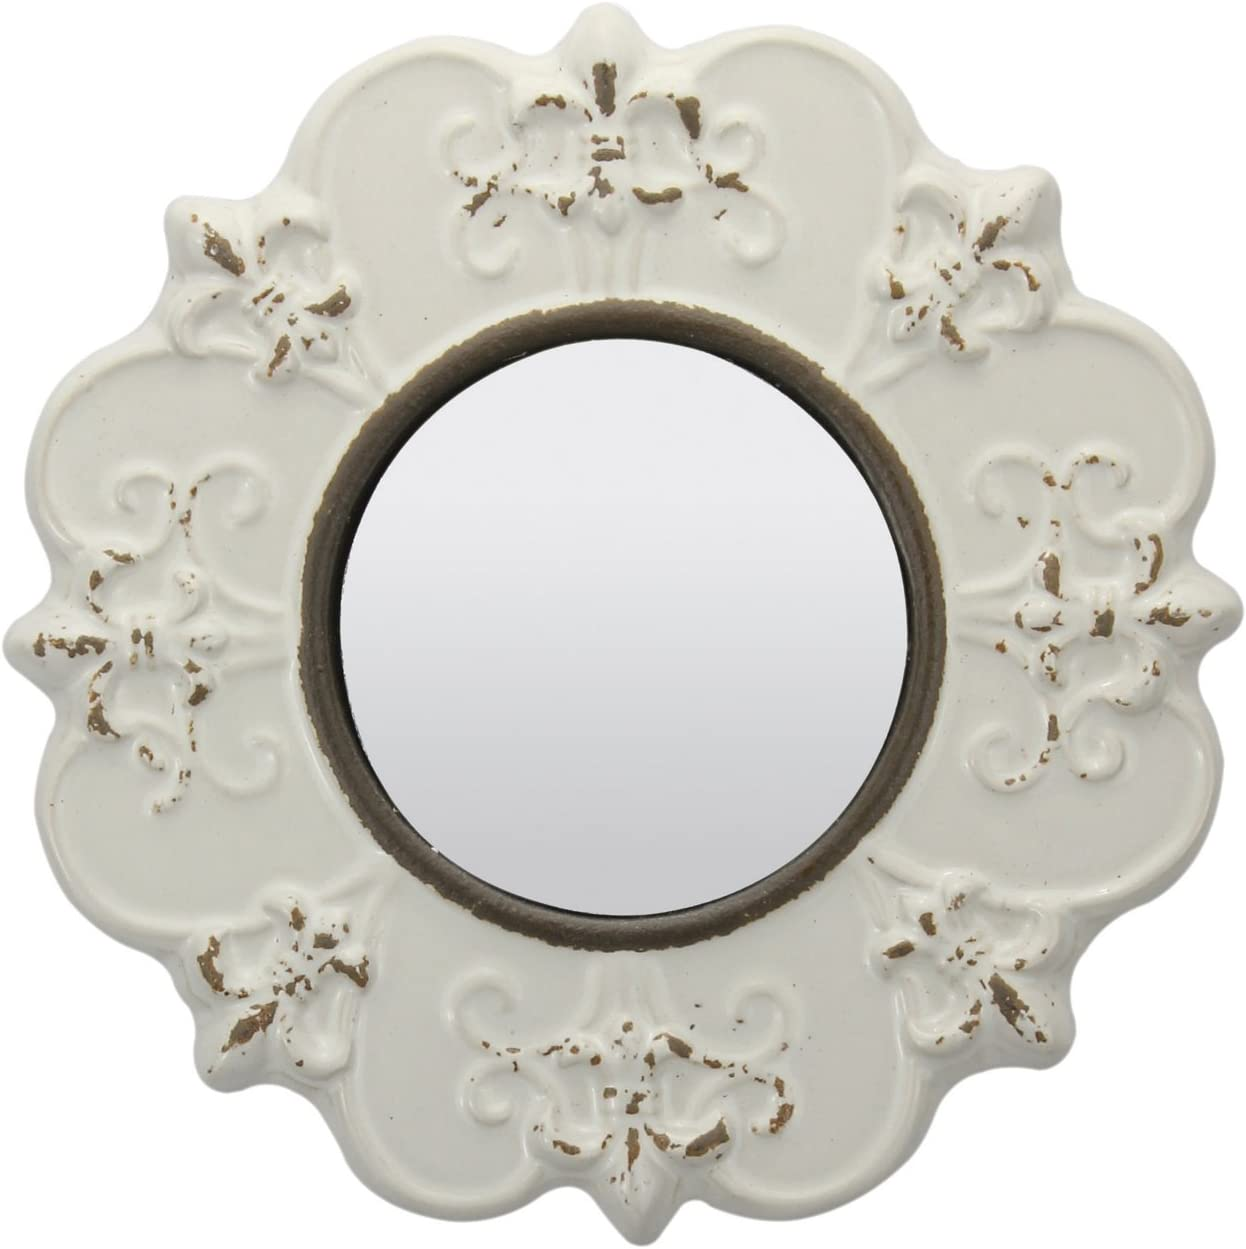 Stonebriar White Round Antique Ceramic Wall Mirror, Vintage Home Décor for Living Room, Kitchen, Bedroom, or Hallway, French Country Decor: Home & Kitchen